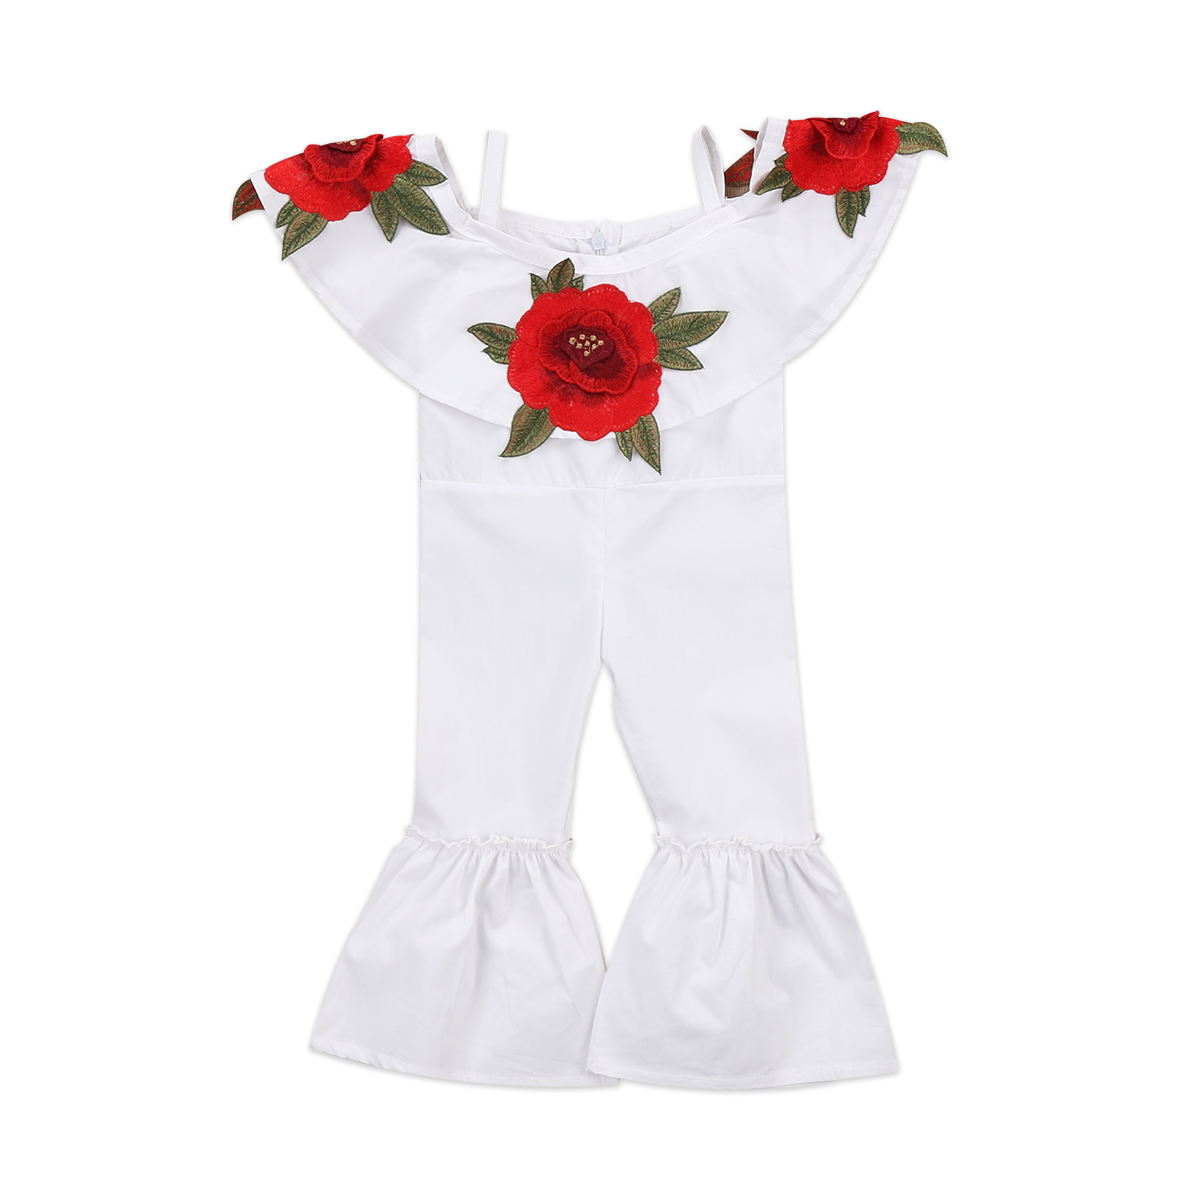 Kids Infant Baby Girls Clothing Romper Short Sleeve Flower Cute Jumpsuit Clothes Outfits Sunsuit Girl cute newborn baby girl romper 2017 summer ruffles polka dot princess kids jumpsuit headband 2pcs outfits sunsuit clothes